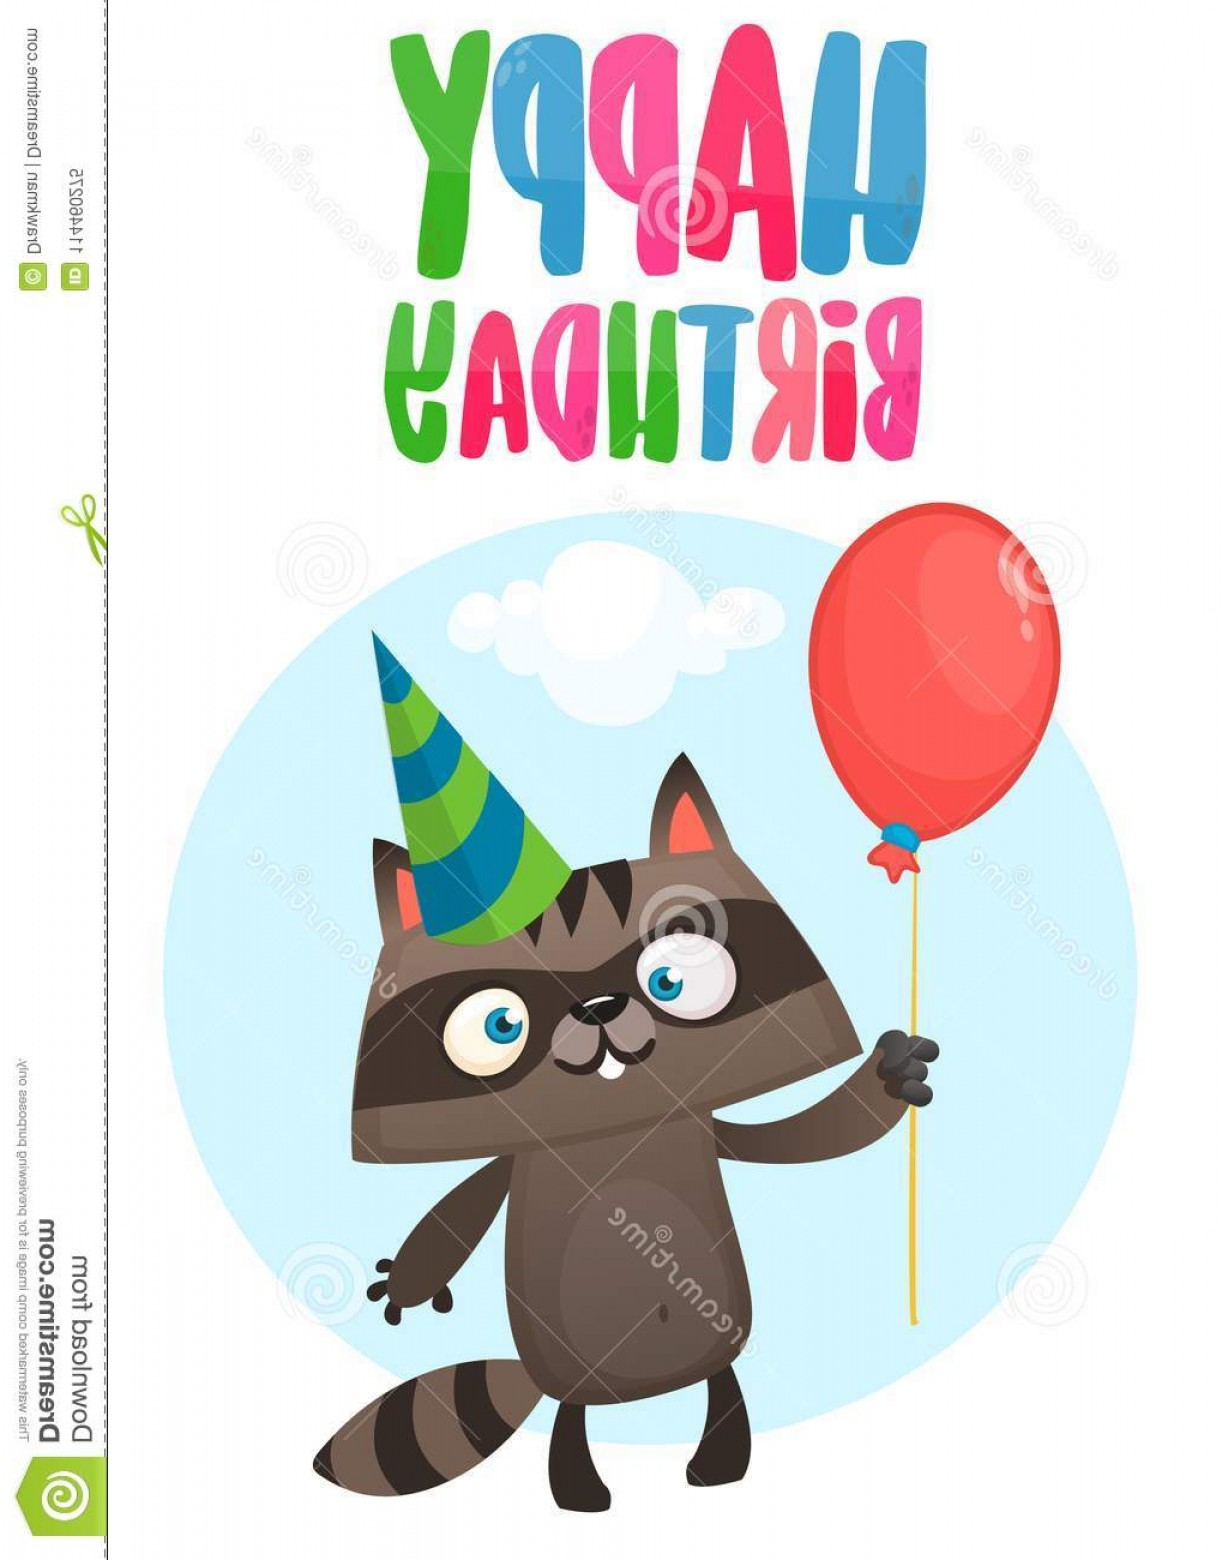 Teal Birthday Hat Vector: Funny Cartoon Raccoon Holding Red Balloon Wearing Birthday Party Hat Vector Illustration Birthday Postcard Design Print Image